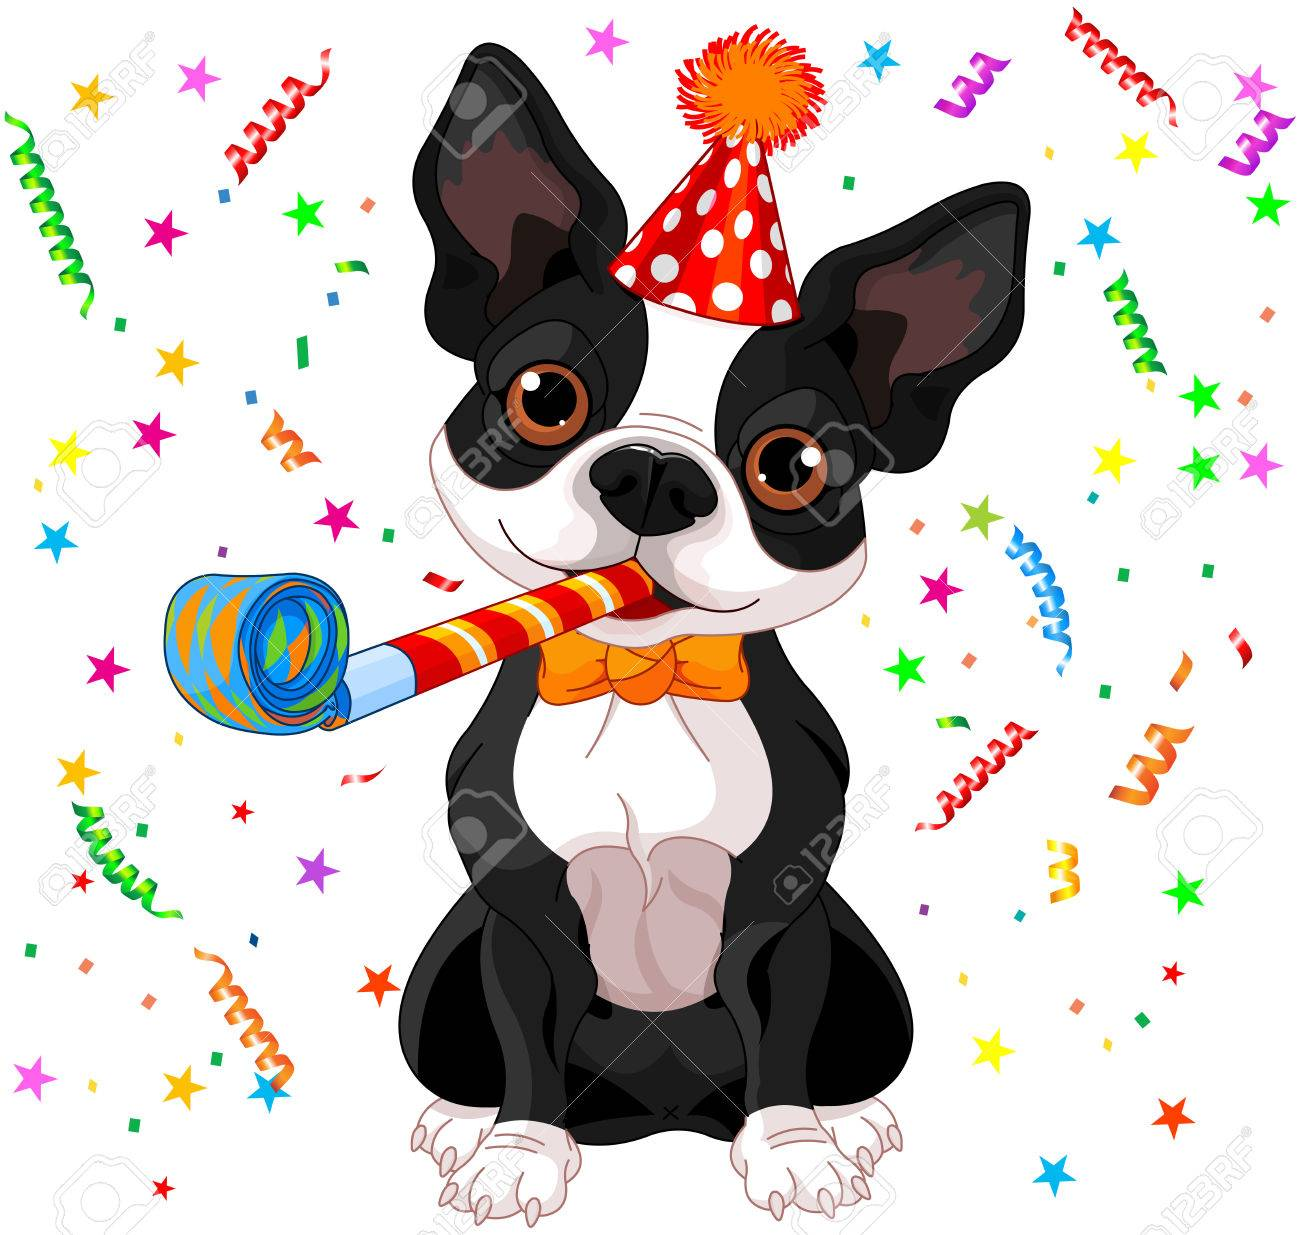 Se salit en urinant 35588778-illustration-of-cute-boston-terrier-celebrating